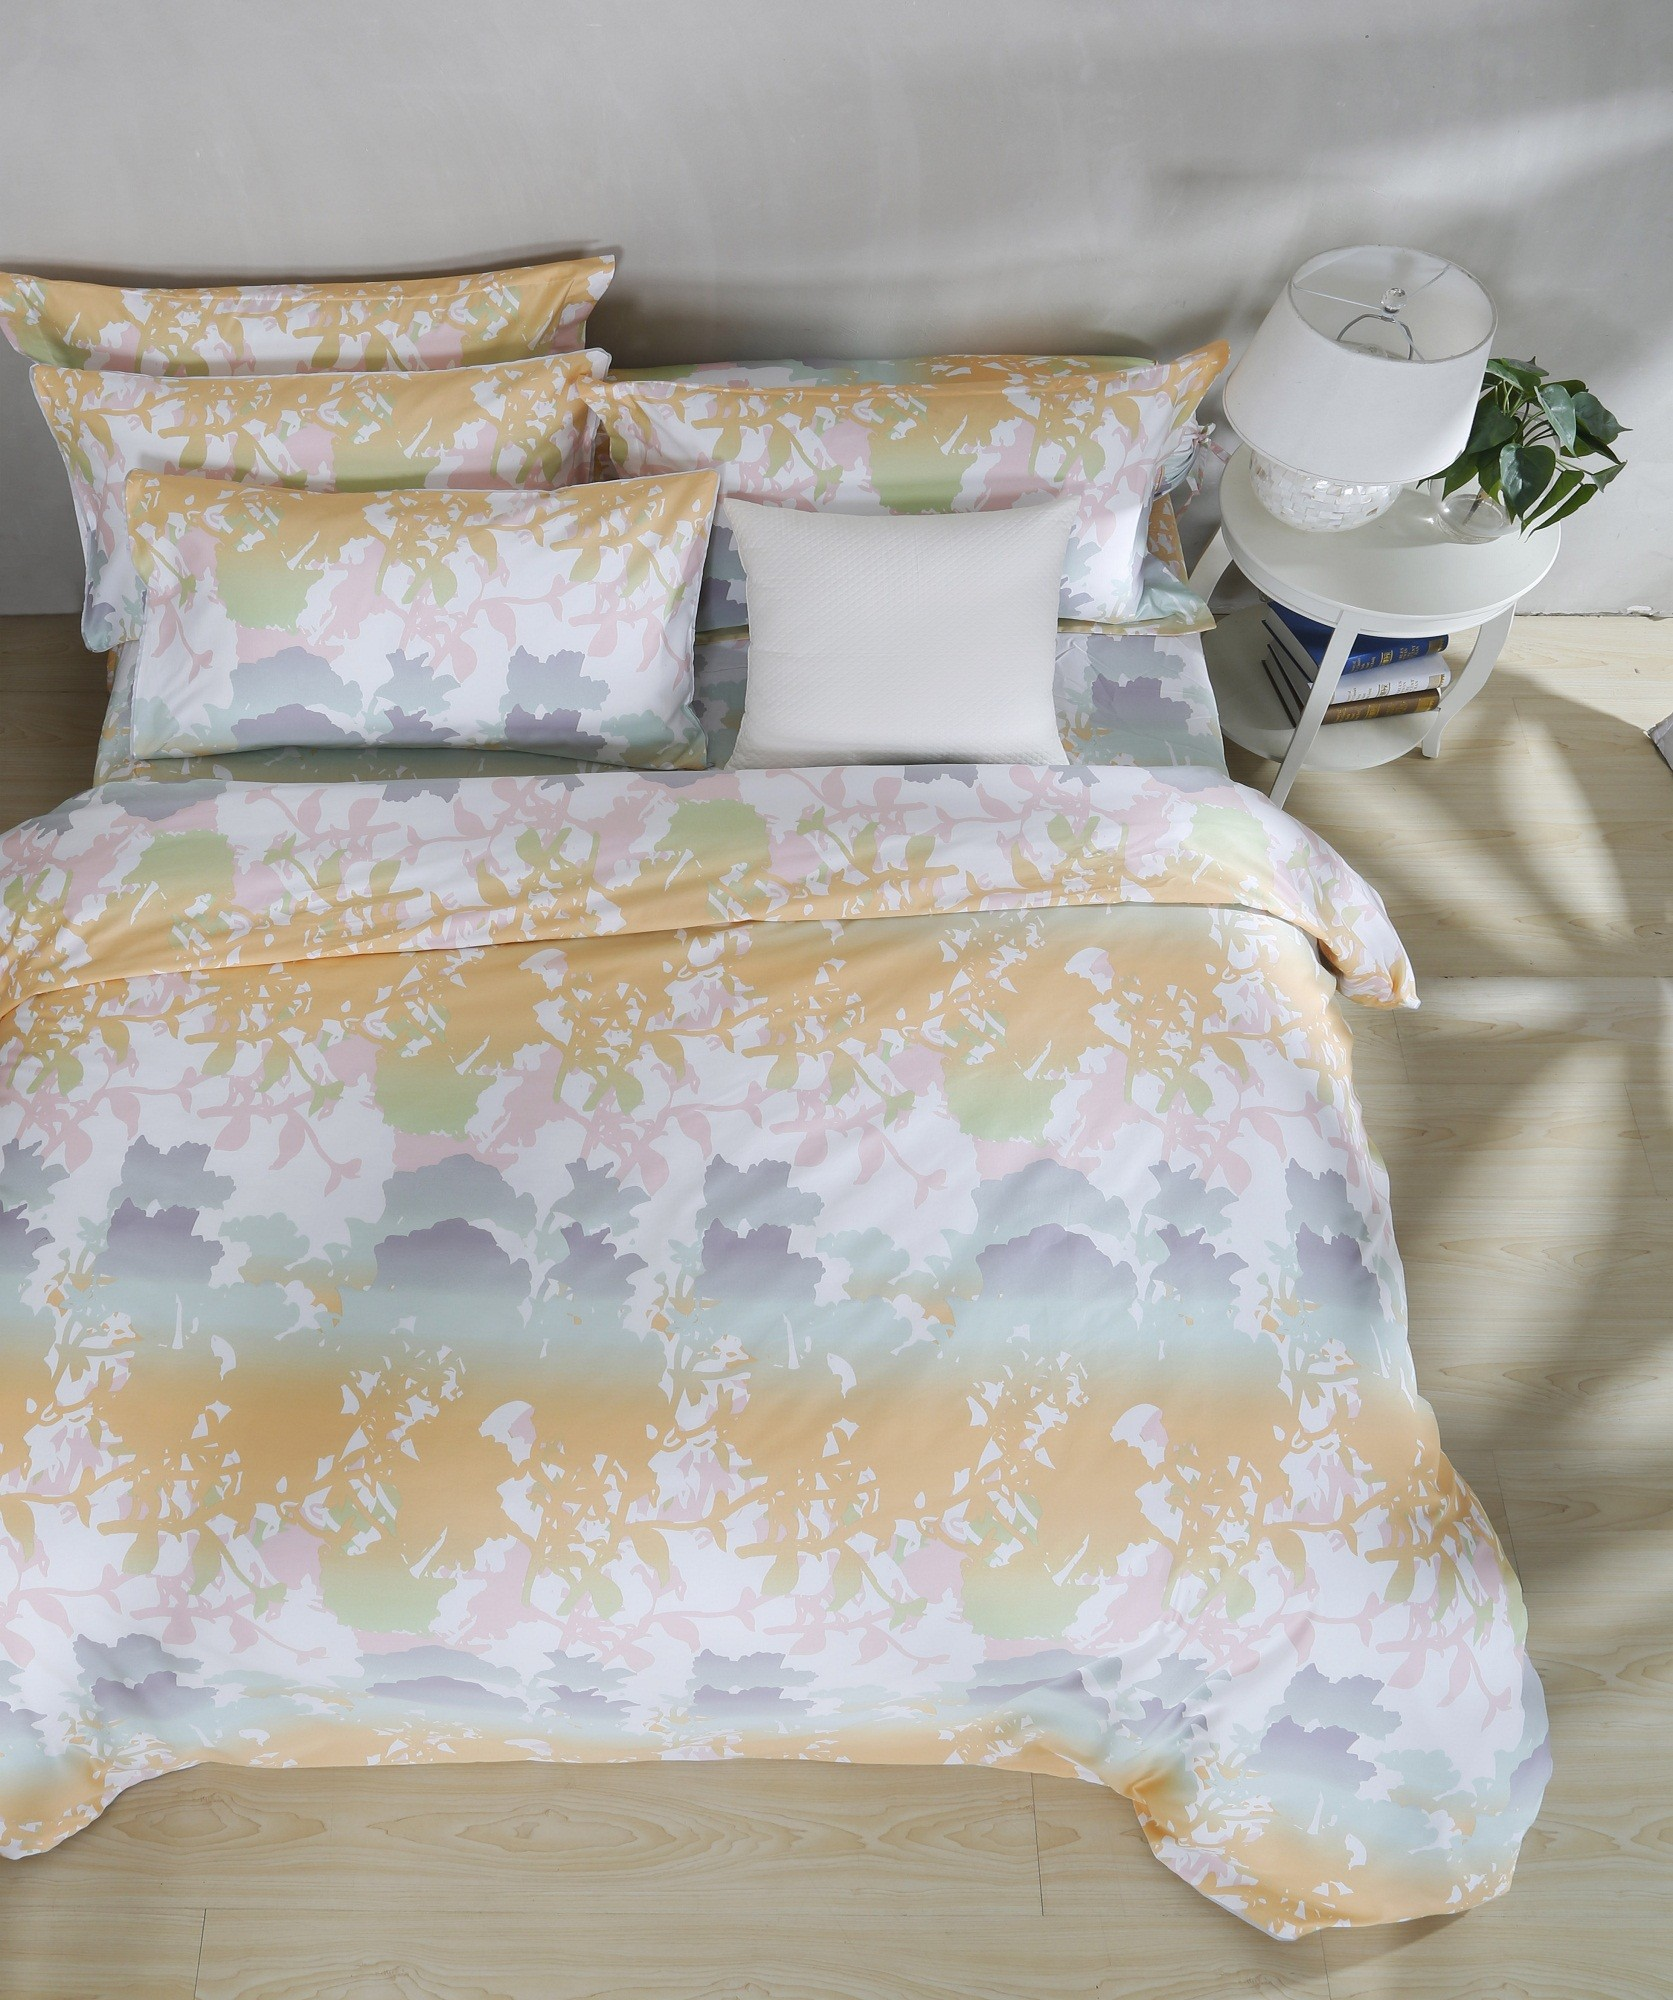 brooks fitted sheet set queen furniture home d cor fortytwo. Black Bedroom Furniture Sets. Home Design Ideas